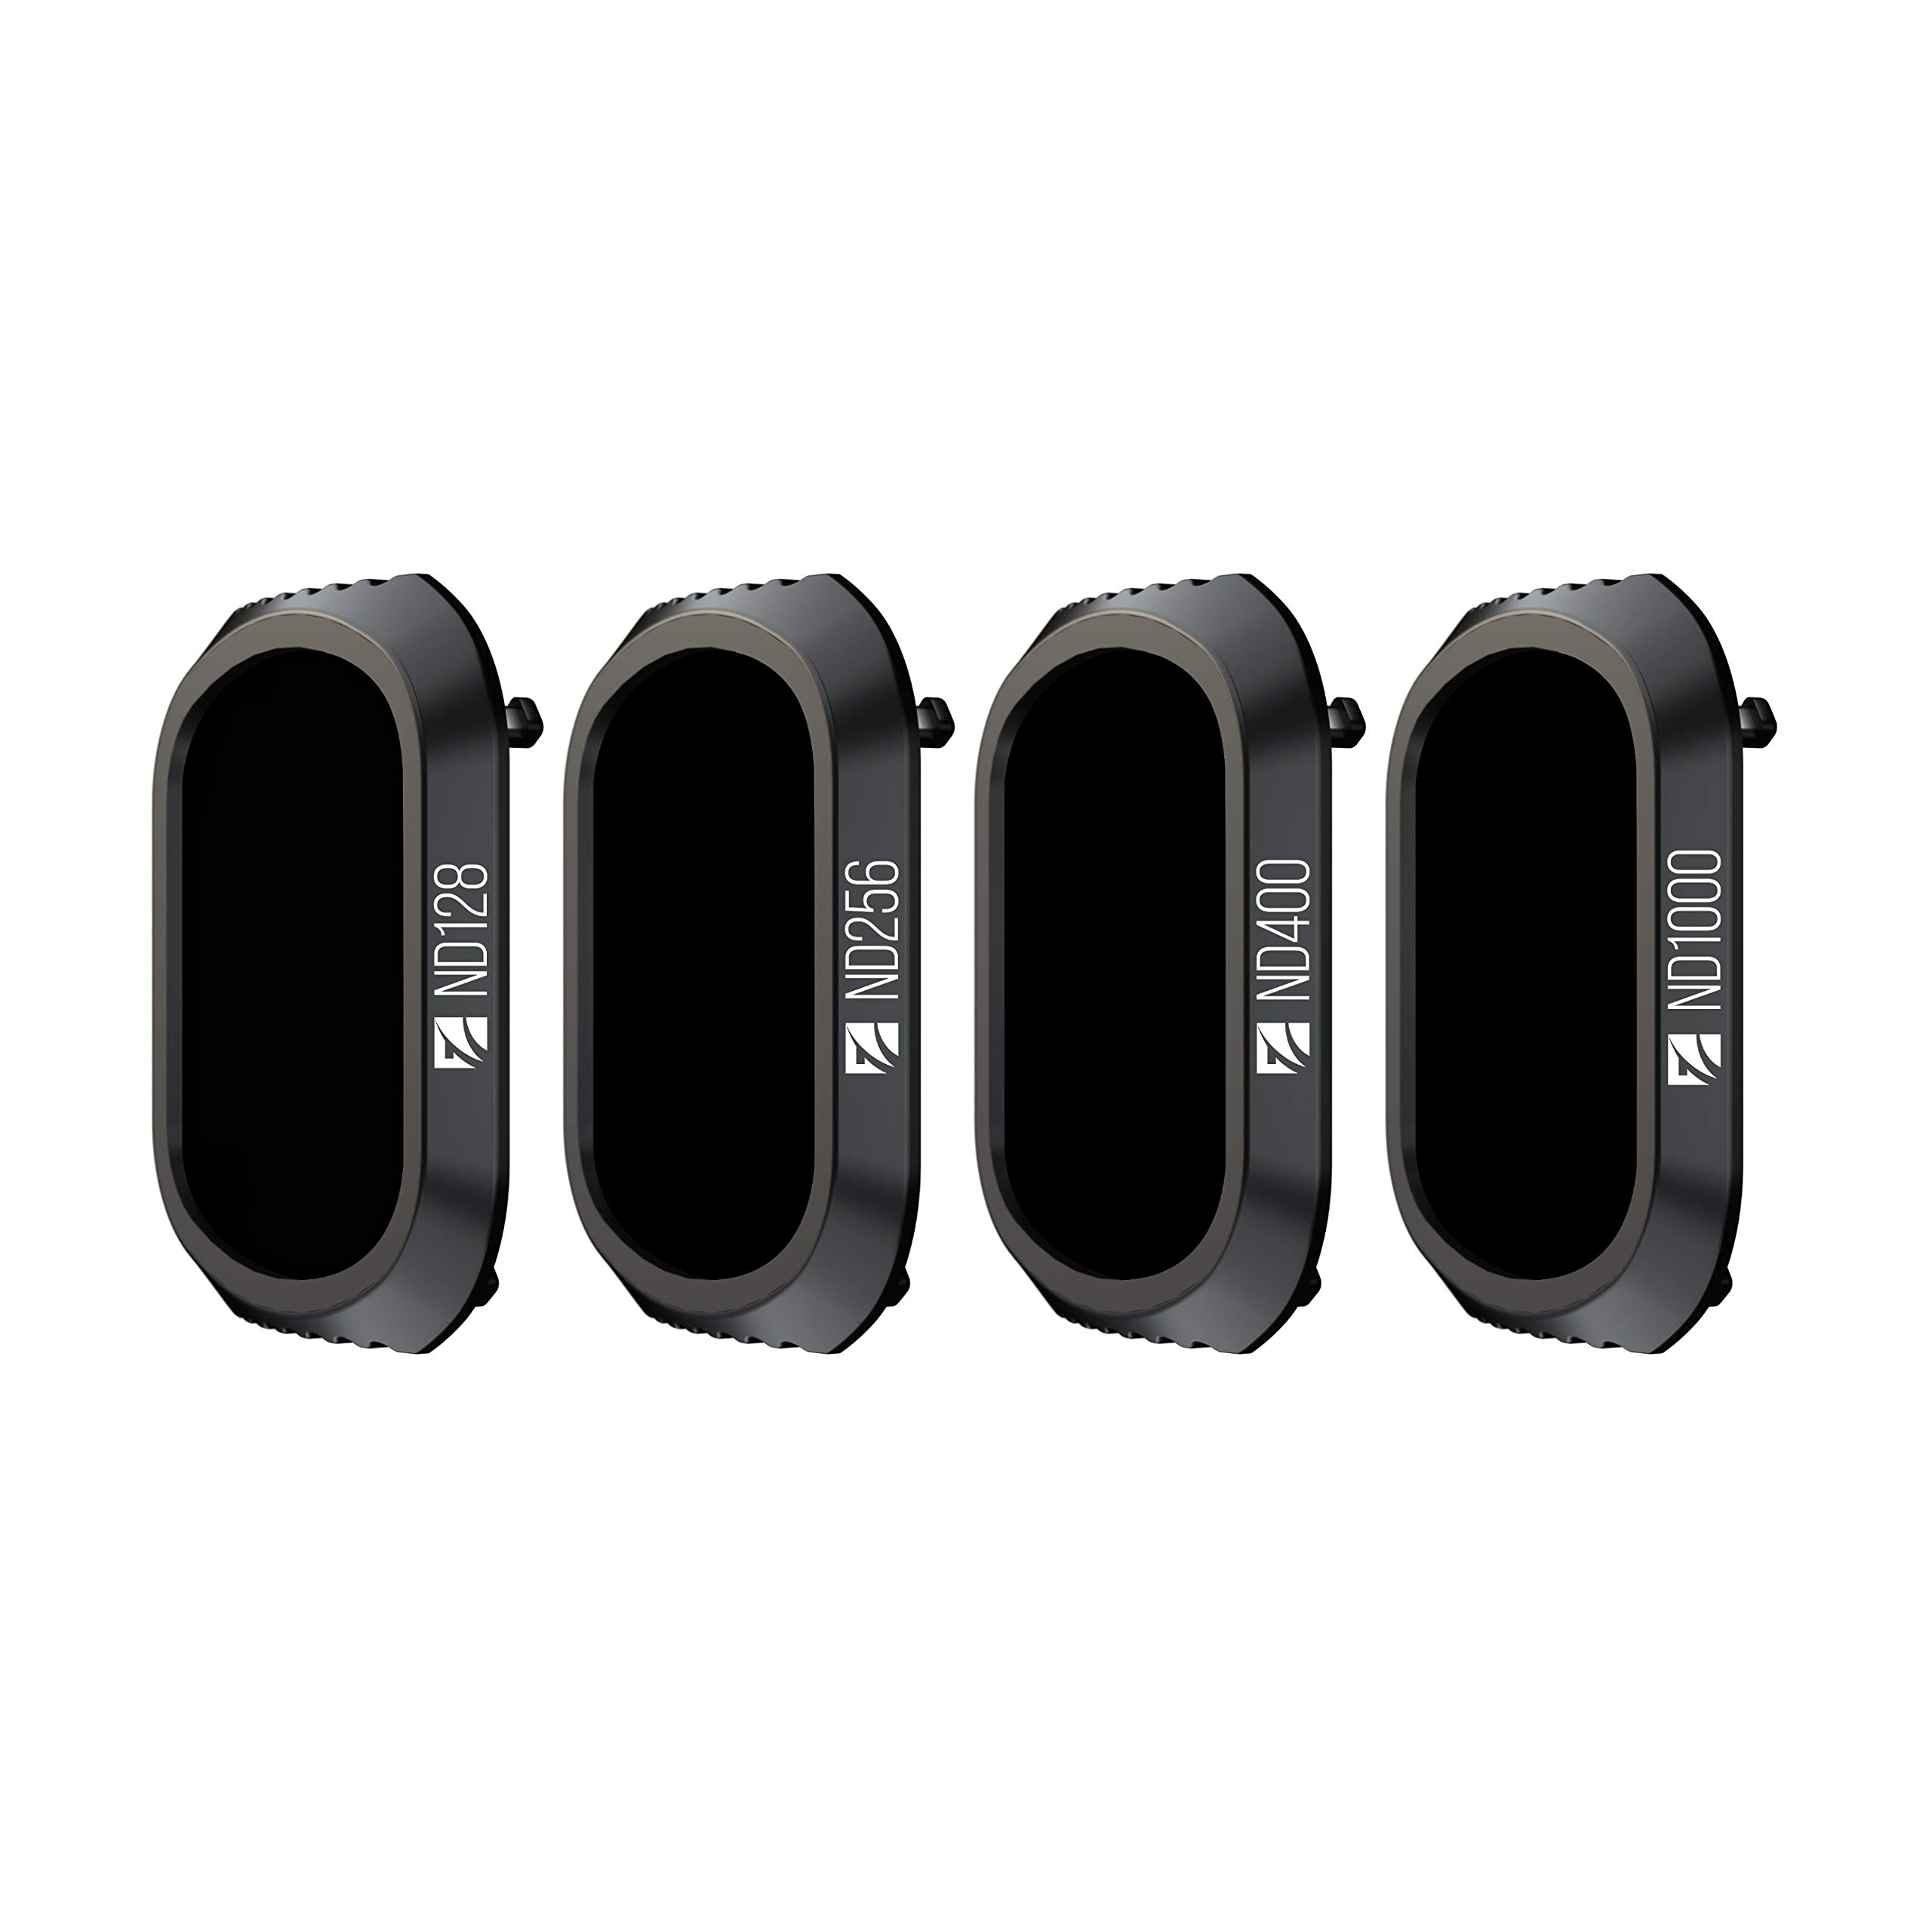 Freewell Long Exposure Photography- 4K Series - 4Pack ND128, ND256, ND400, ND1000 Camera Lens Filters Compatible with DJI Mavic 2 Pro Drone by Freewell